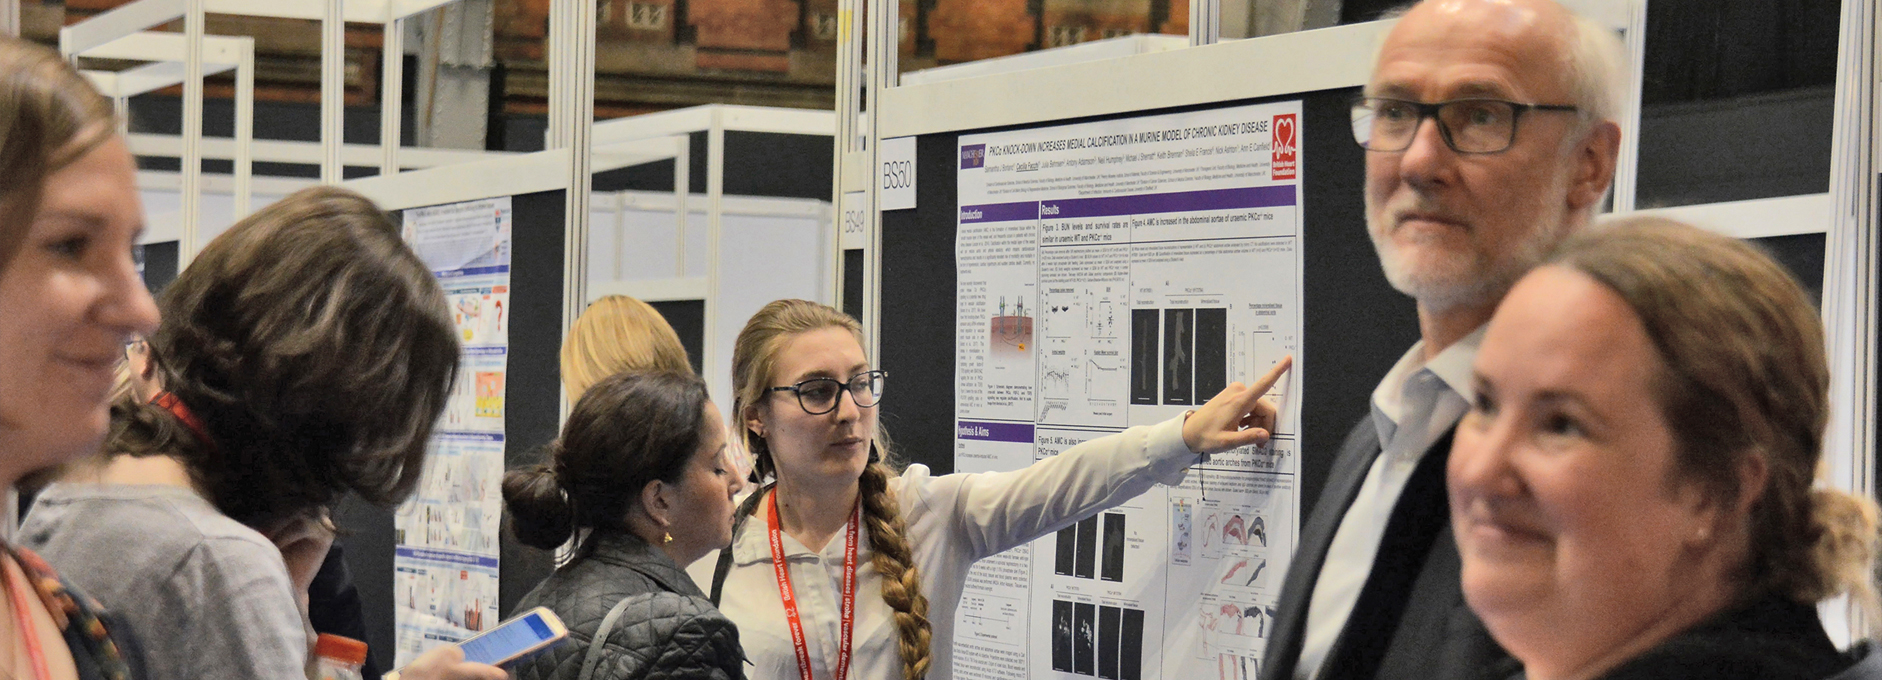 Posters & Abstracts